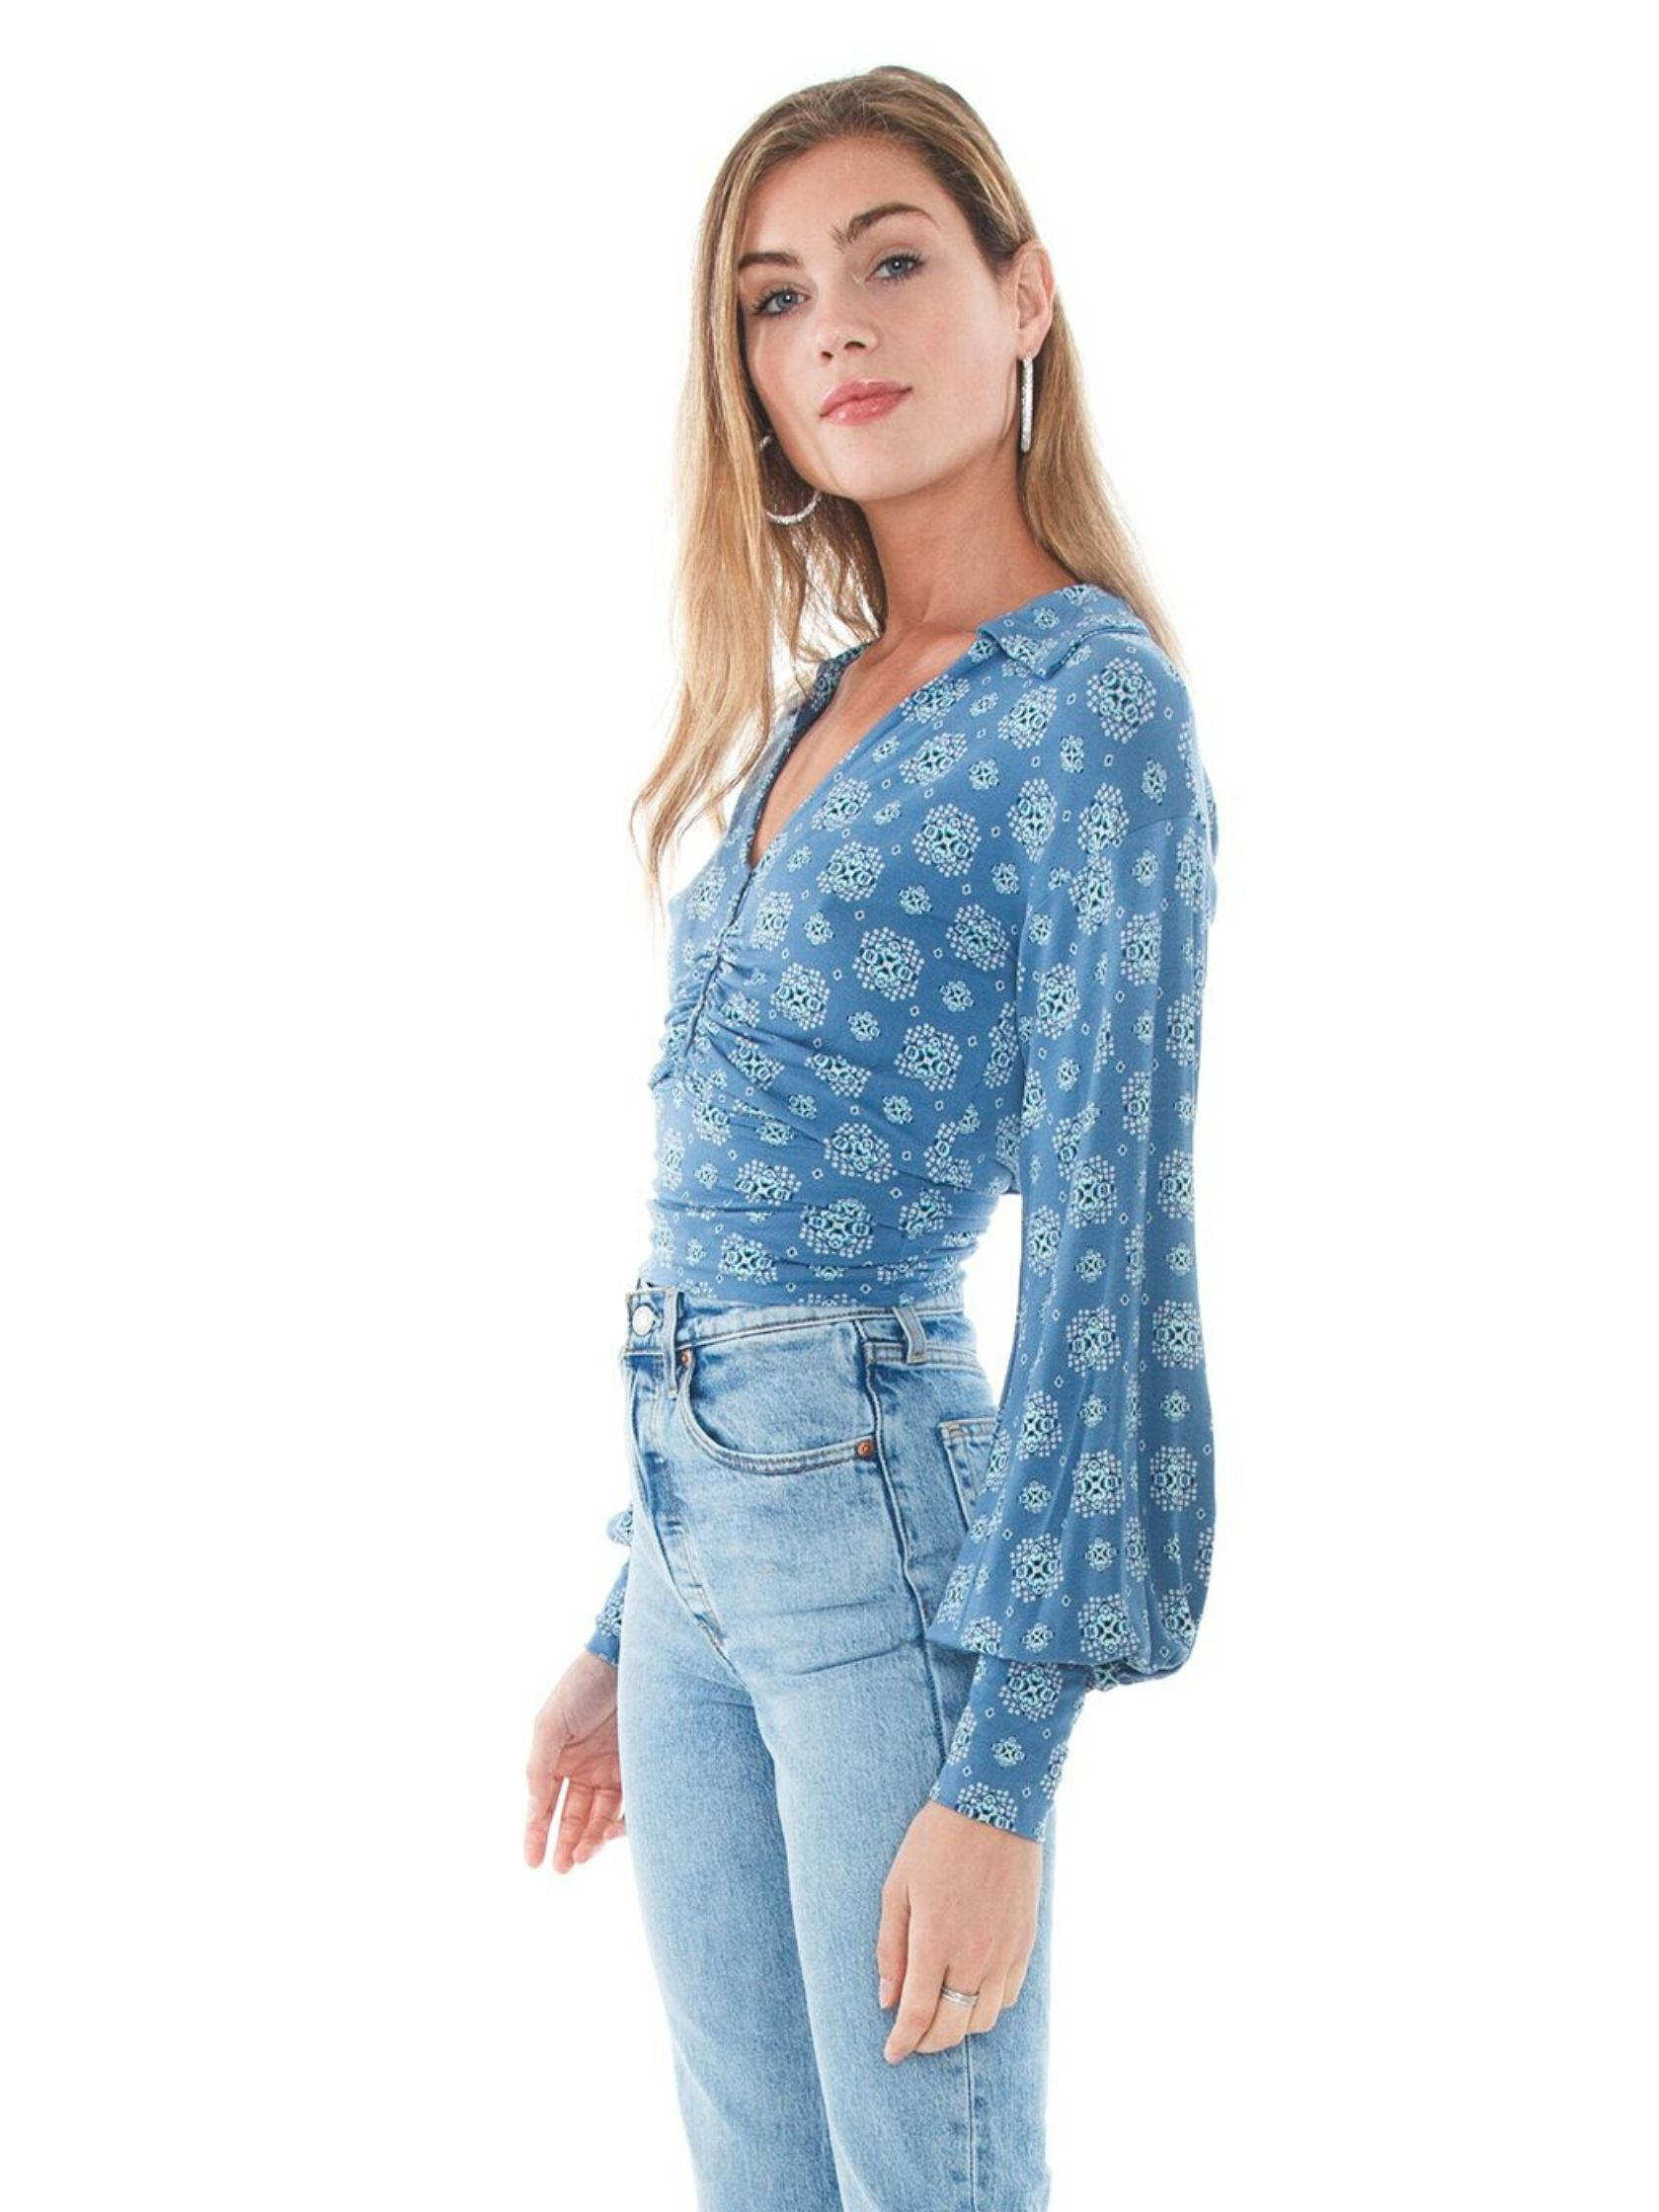 Women wearing a top rental from Free People called Sydney's Printed Top